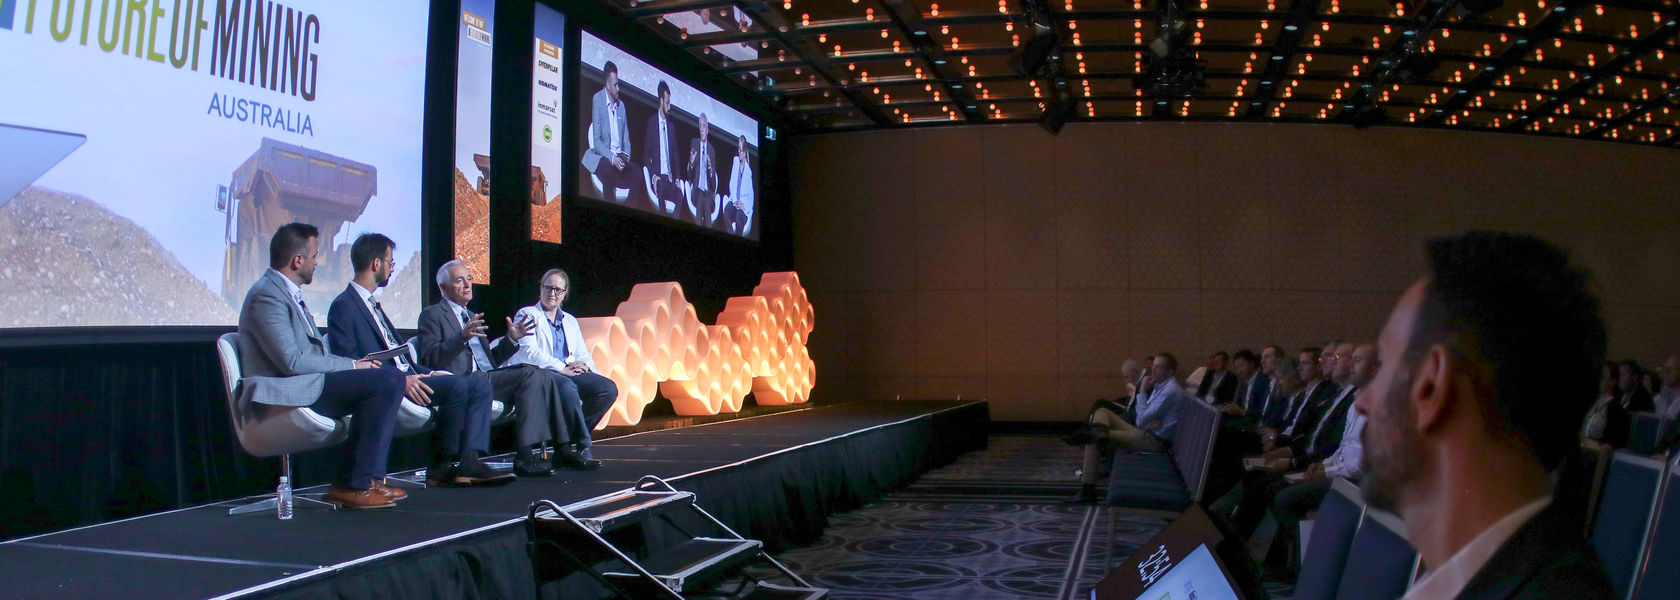 Future of Mining returns to Sydney in 2020